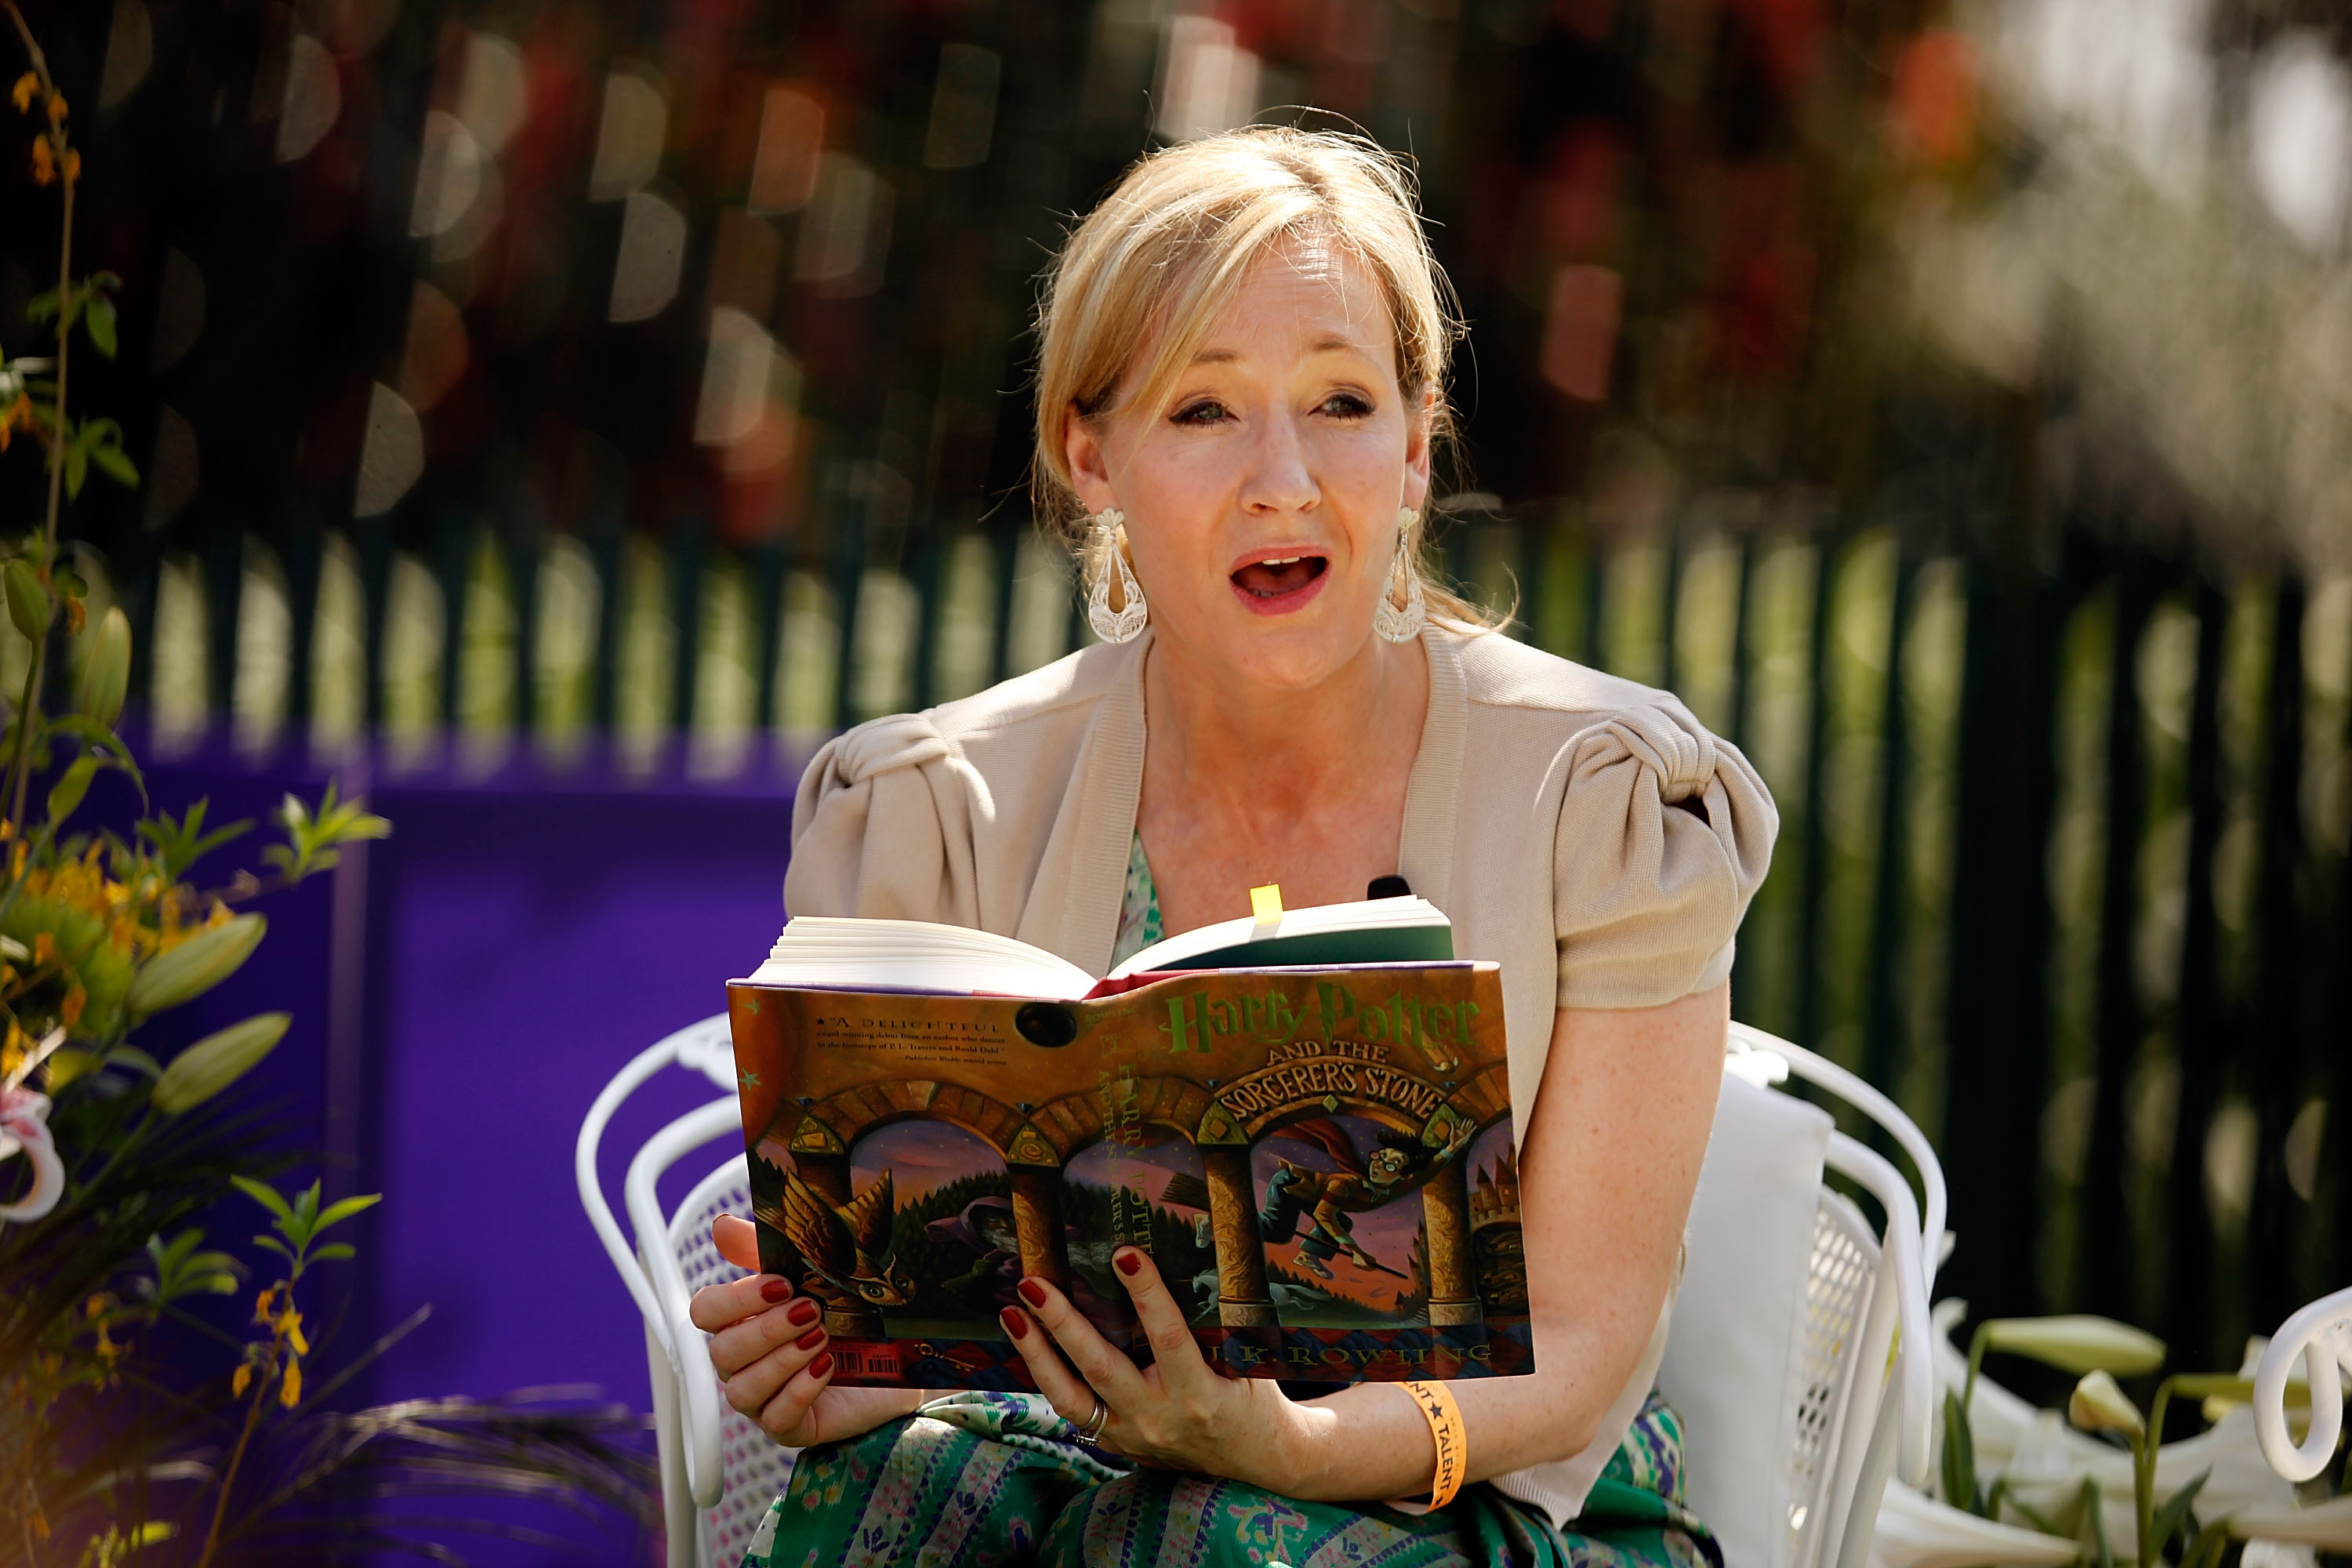 JK Rowling reads Harry Potter and The Philosopher's Stone